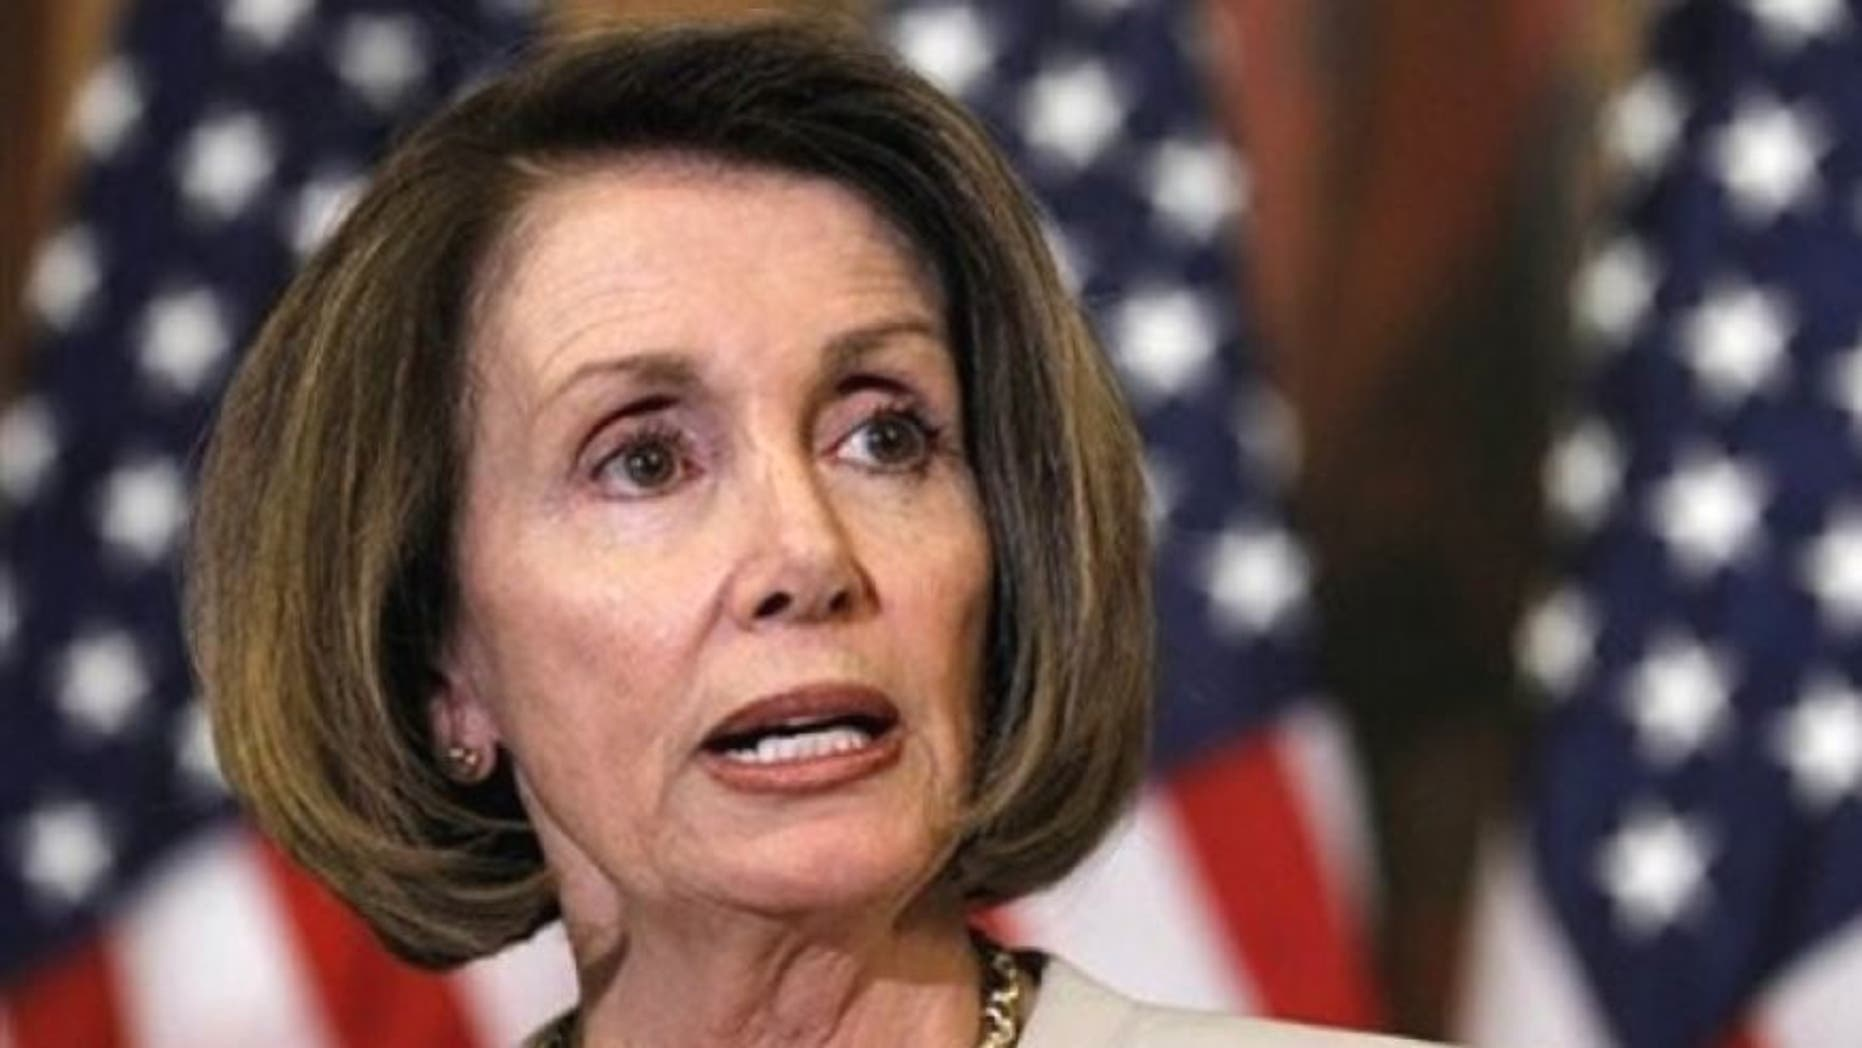 Republicans have for years argued that House Minority Leader Nancy Pelosi's liberal views have been out of touch with America.